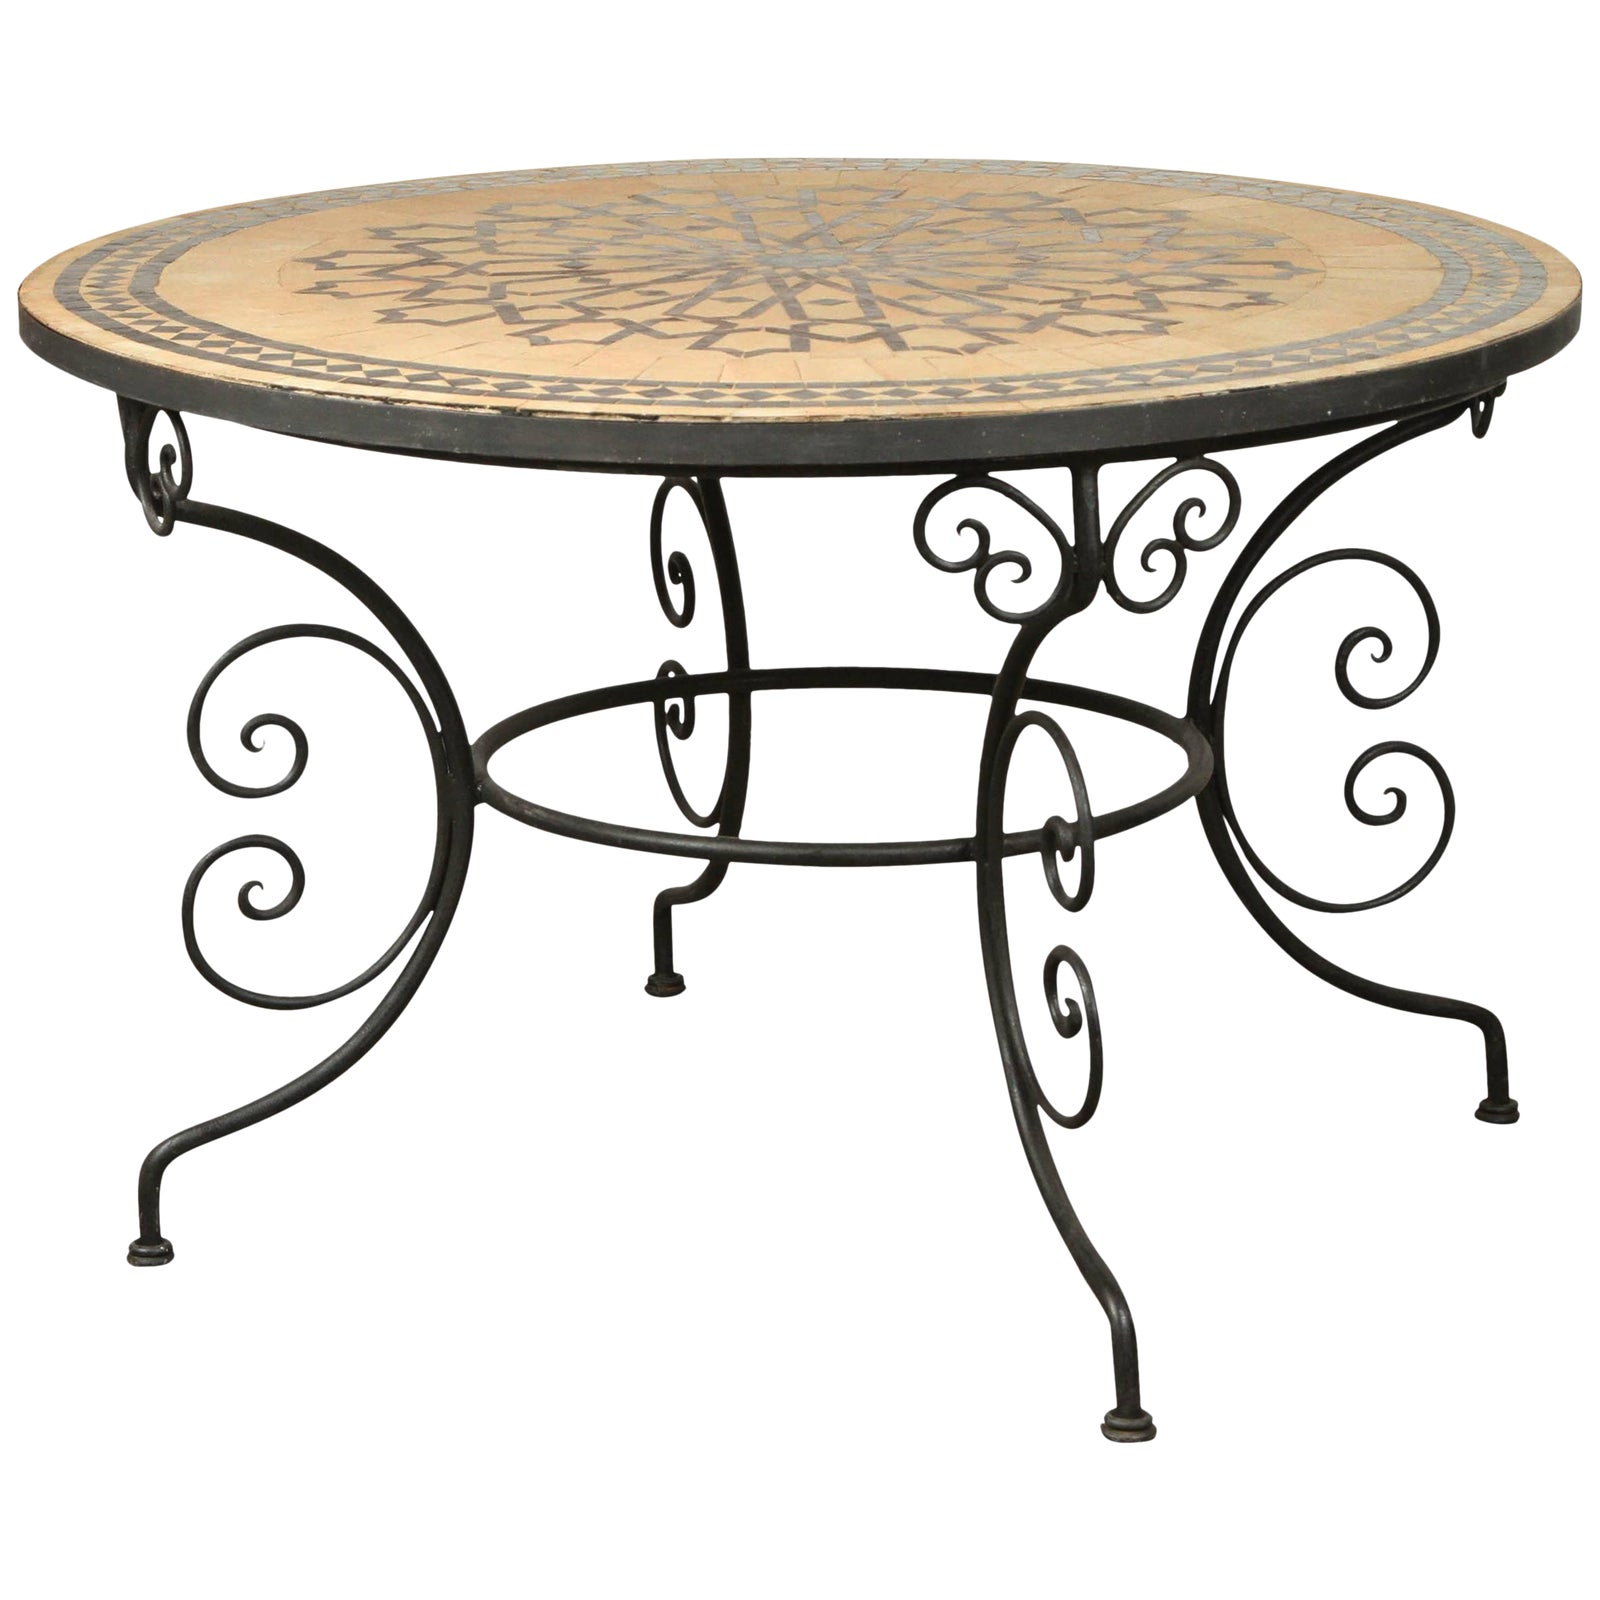 Lovely Moroccan Round Mosaic Outdoor Tile Table On Iron Base 47 In